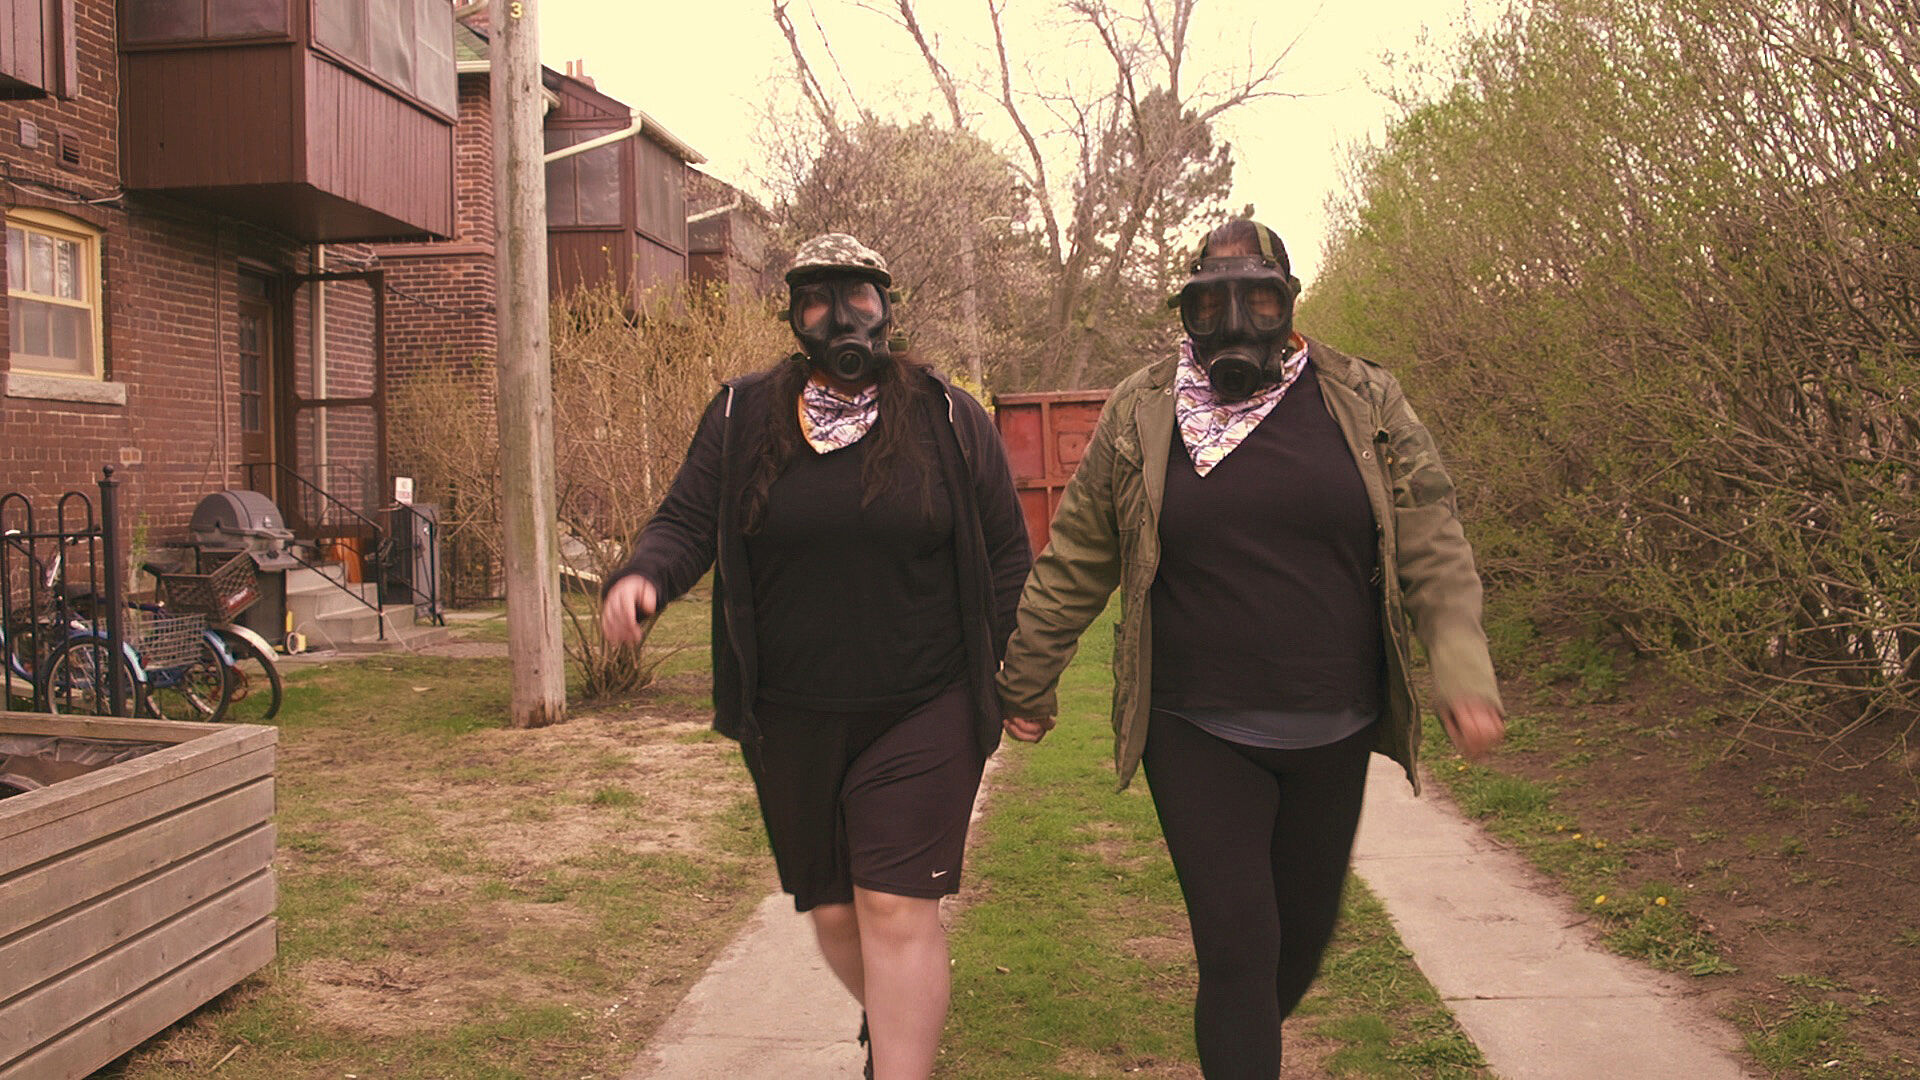 A video still of two people walking and wearing gas masks.